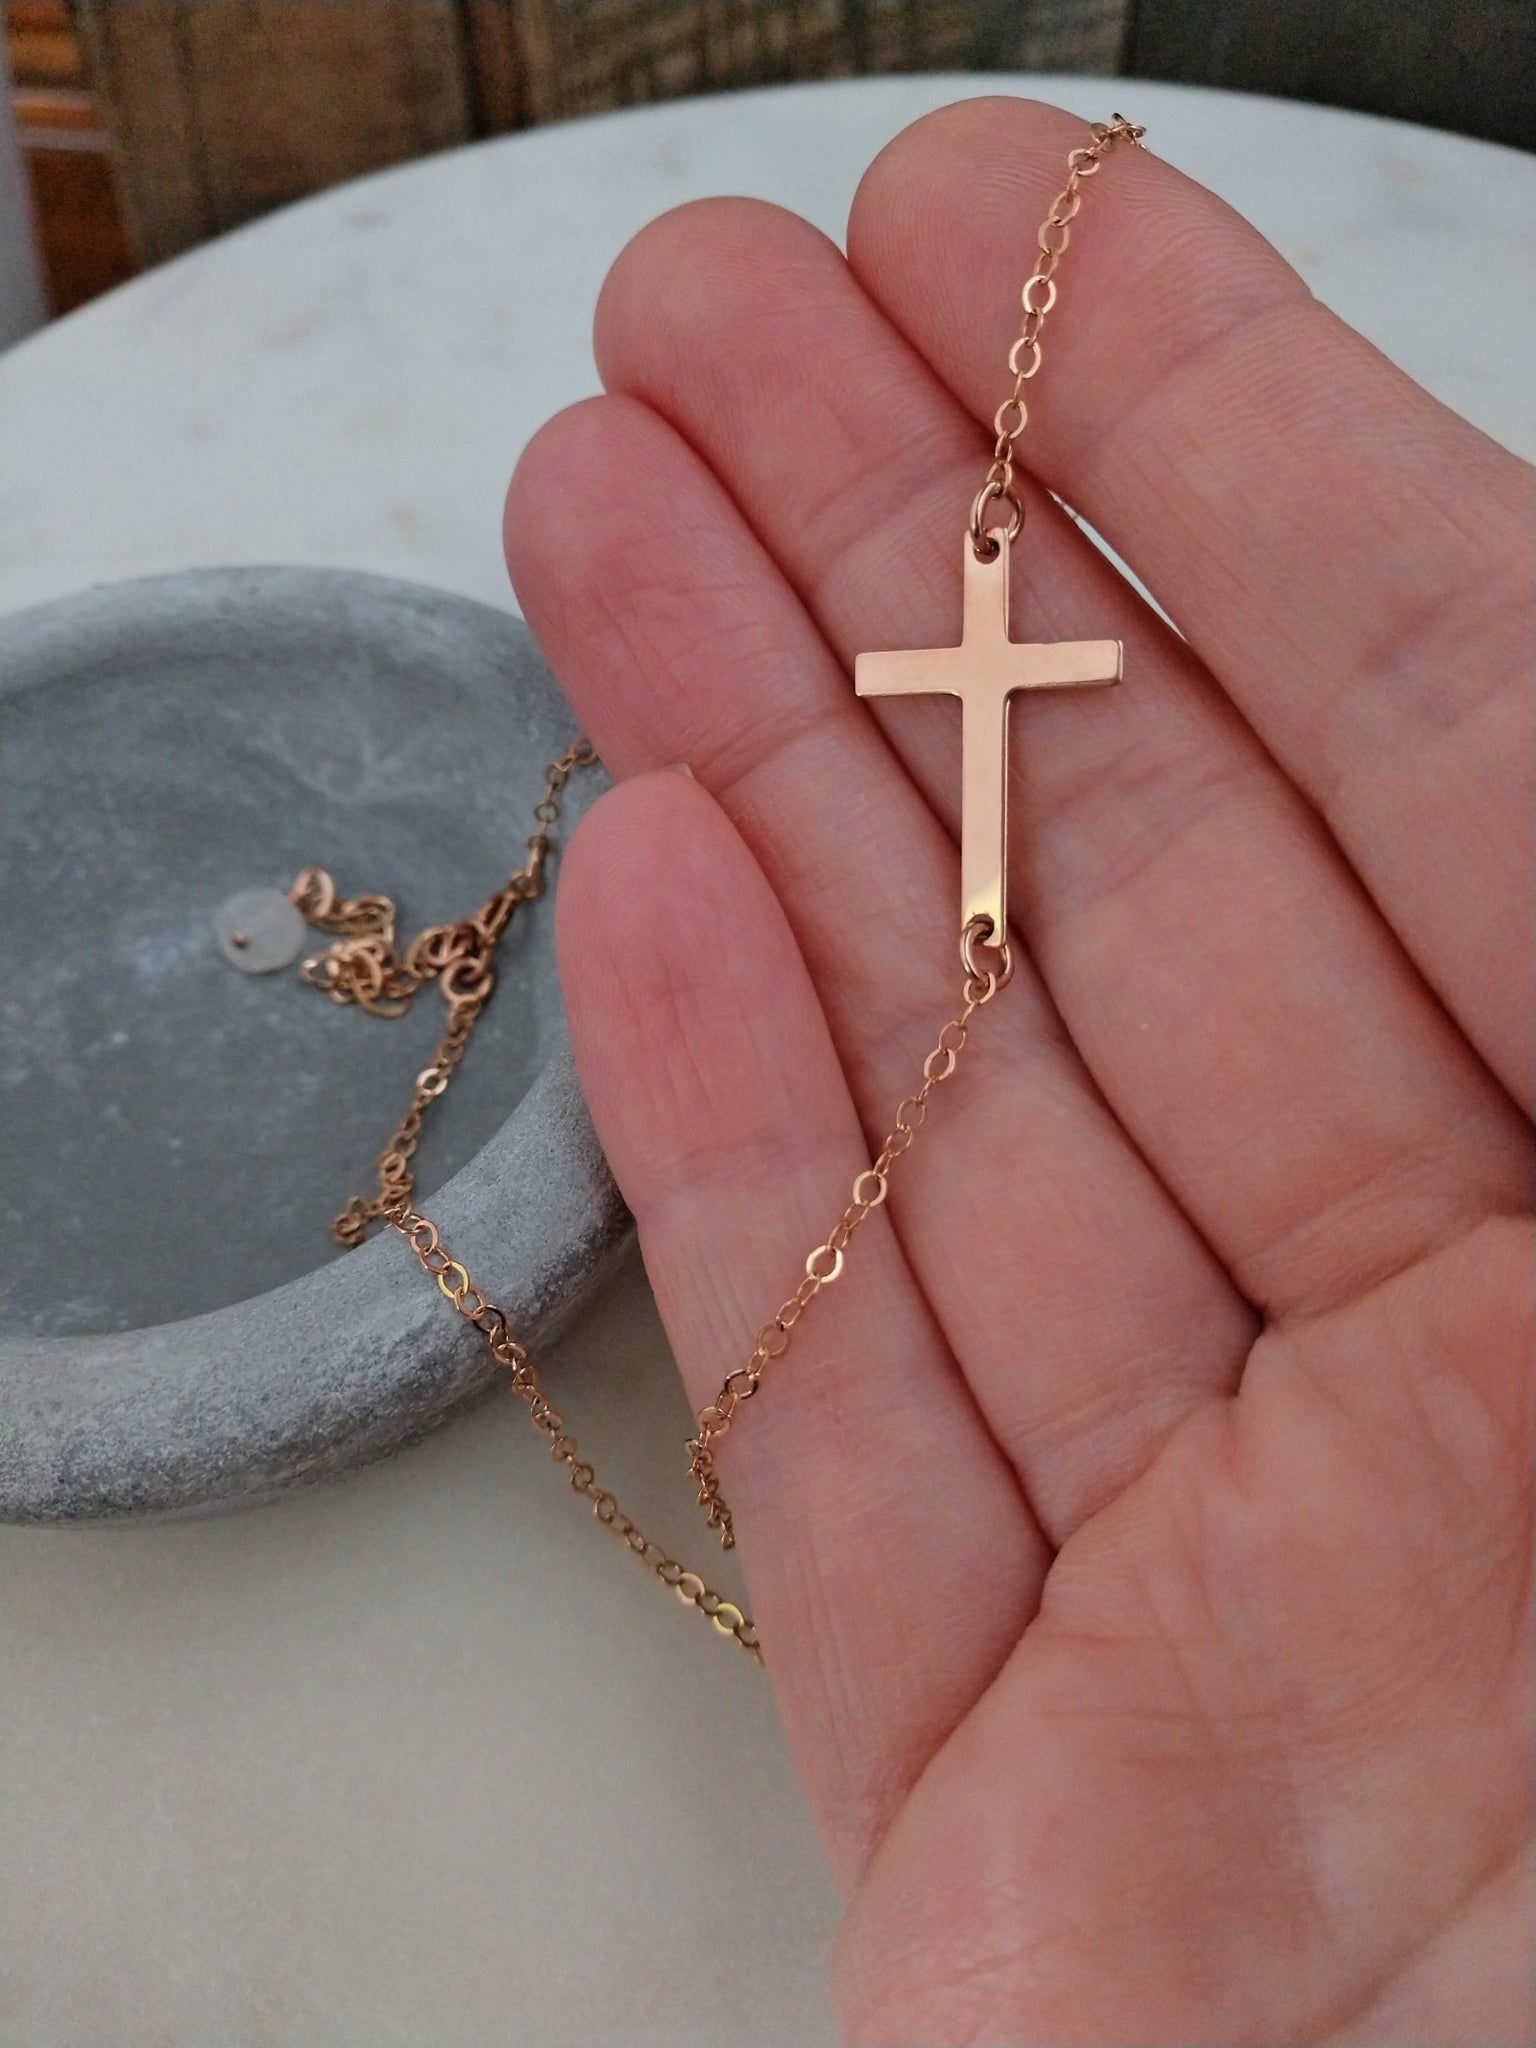 sideways cross necklace | rose gold cross | choker necklace | Rare Soul jewelry